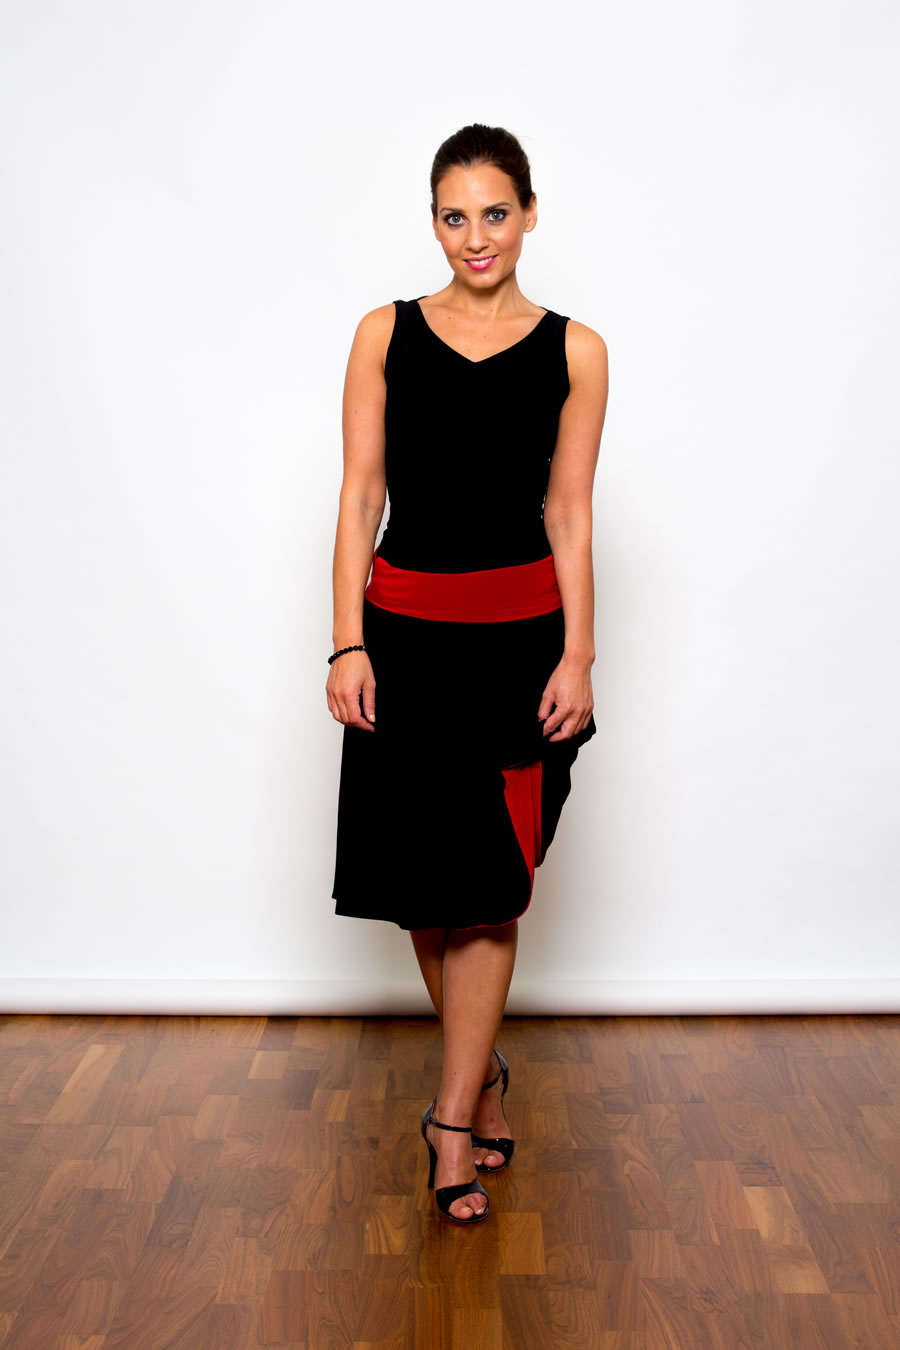 Tango Clothing Dresses Fashion Made In The Uk: Tango Clothing, Dress & Fashion Made In The UK